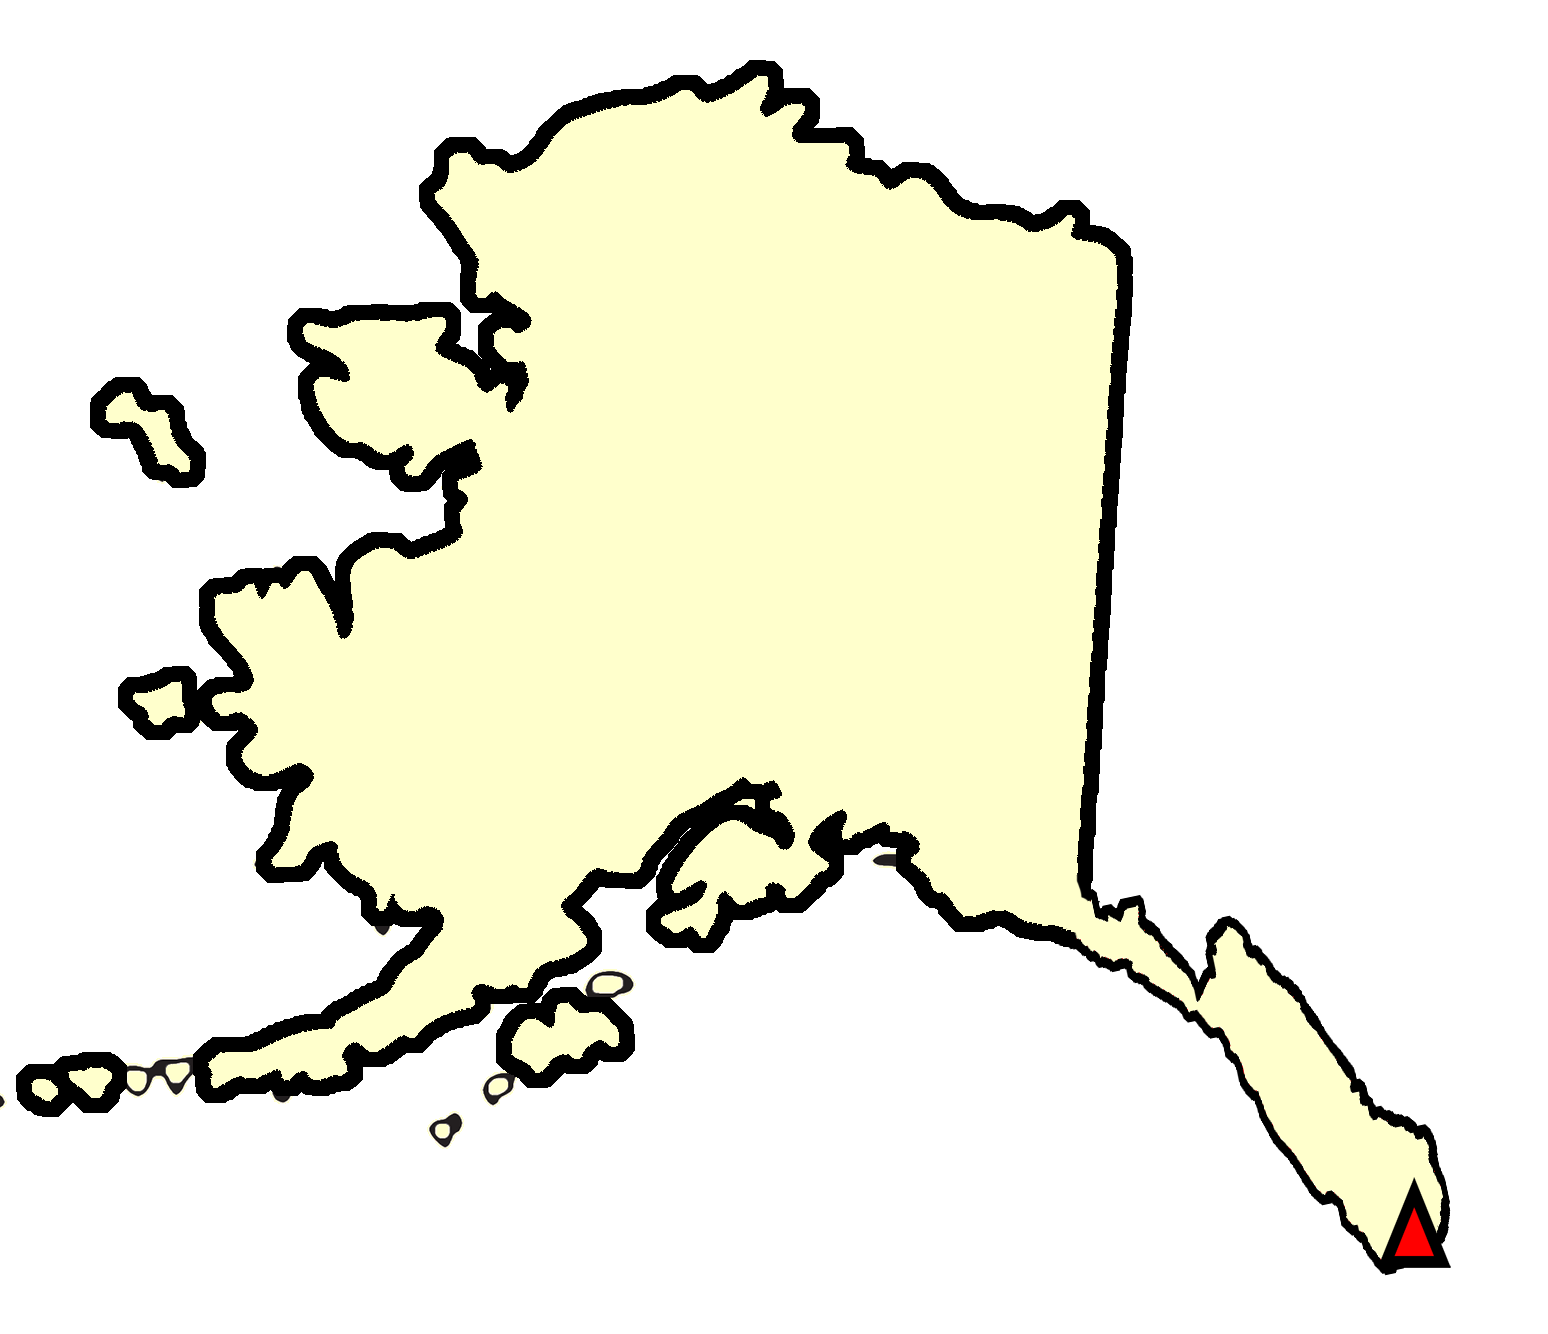 State map location for AK Metlakatla